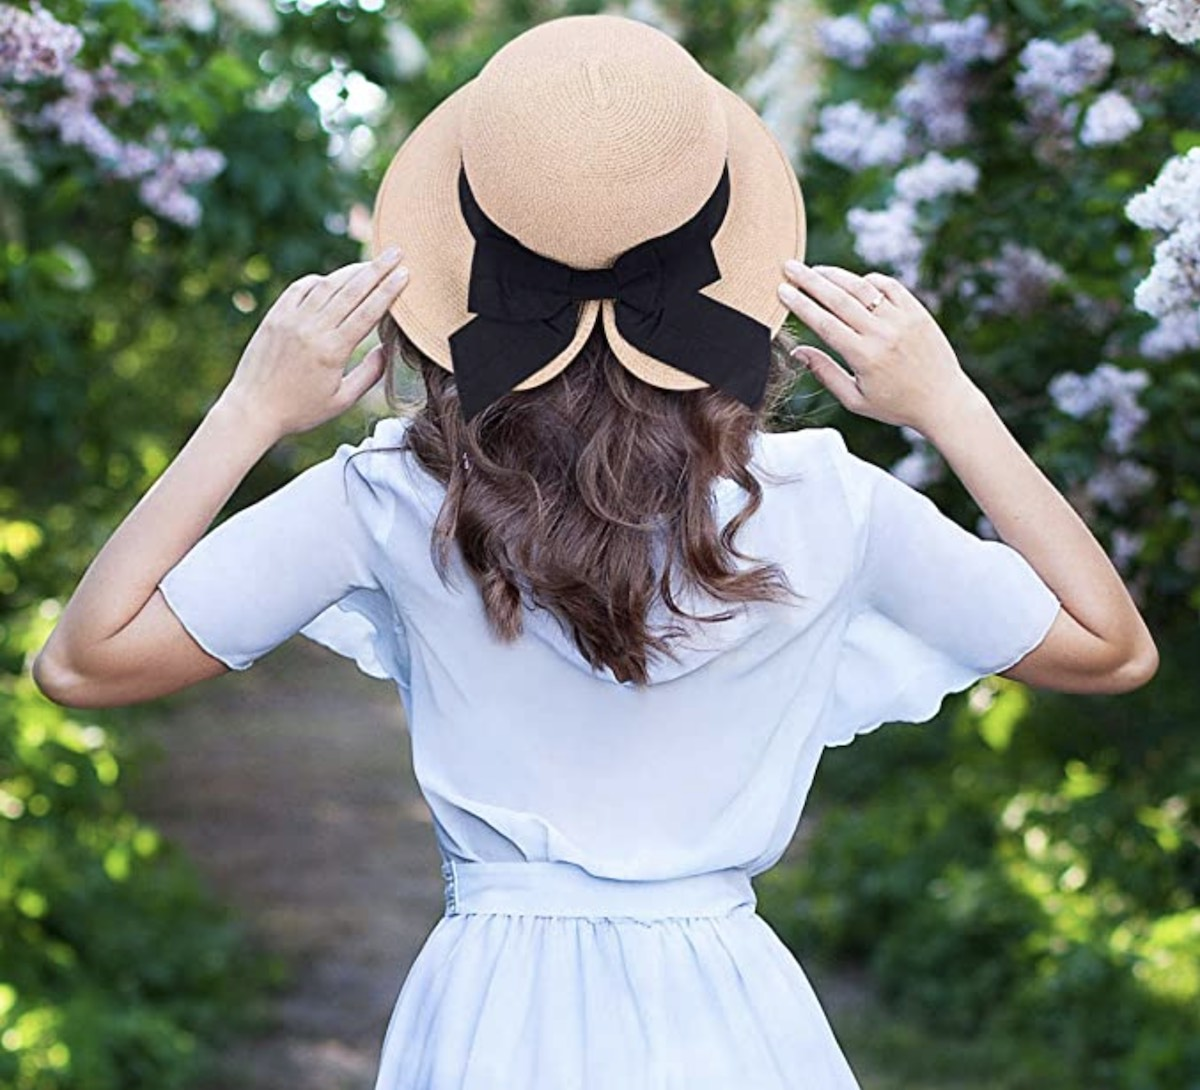 Women's Lightweight Foldable:Packable Beach Sun Hat with Fashionable Bow